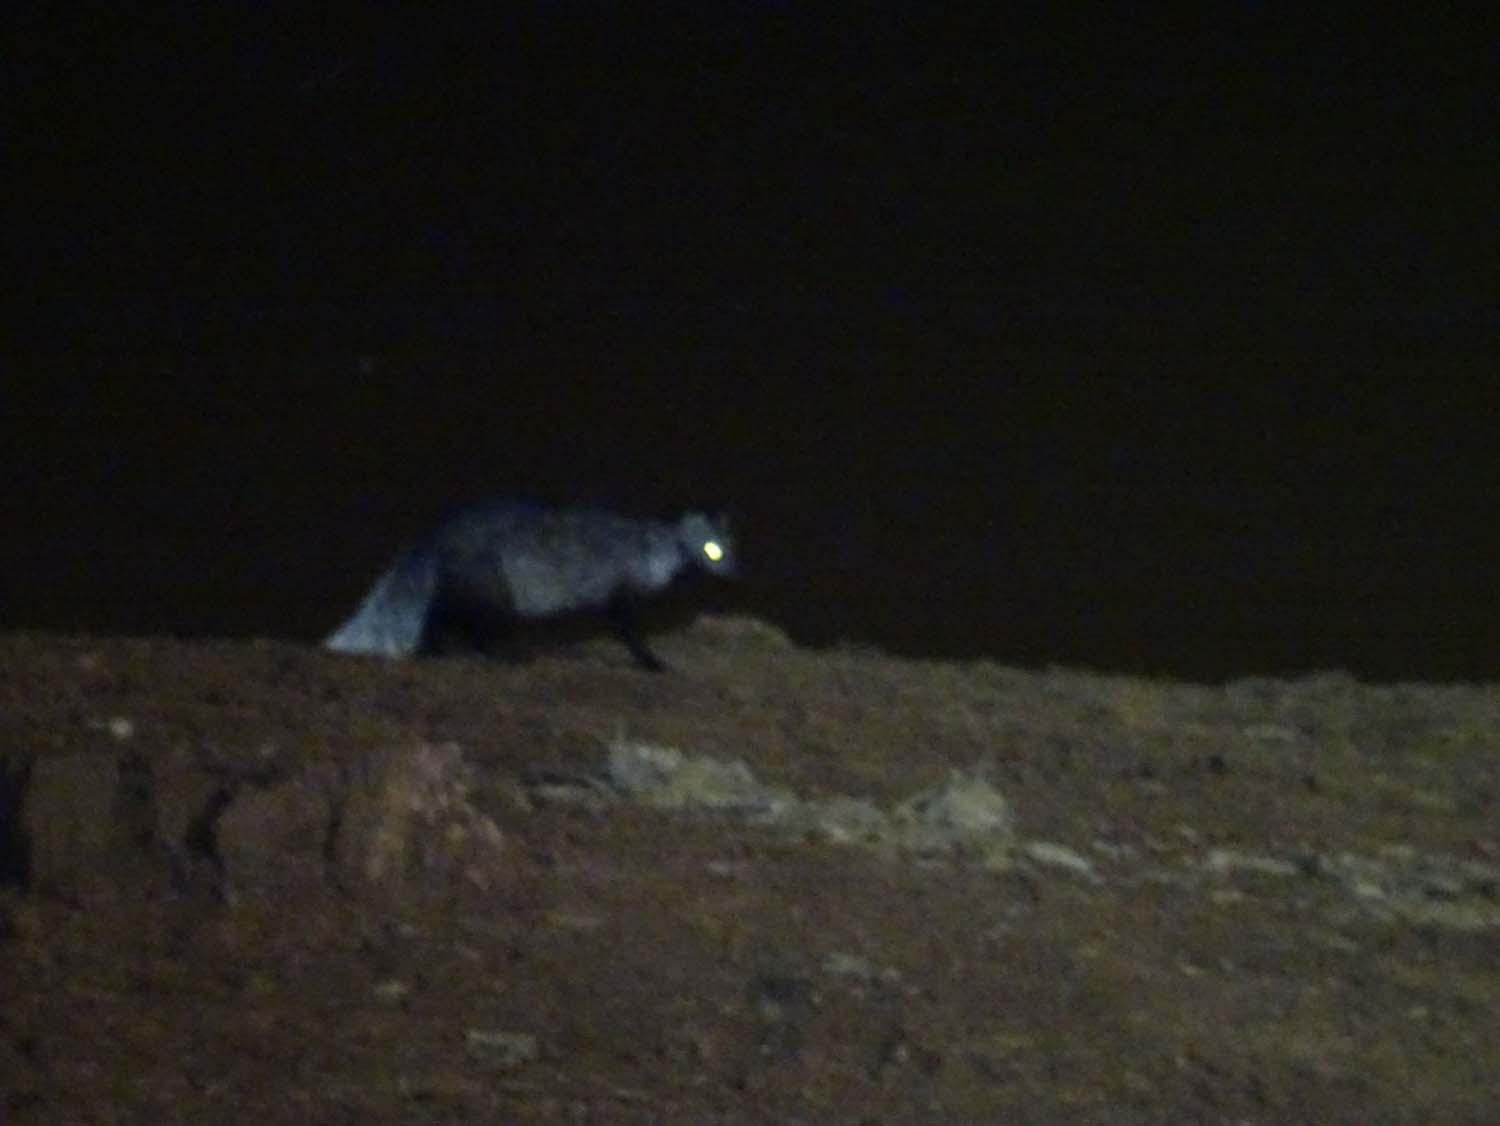 the unknown animal - might it have been a zorilla?!